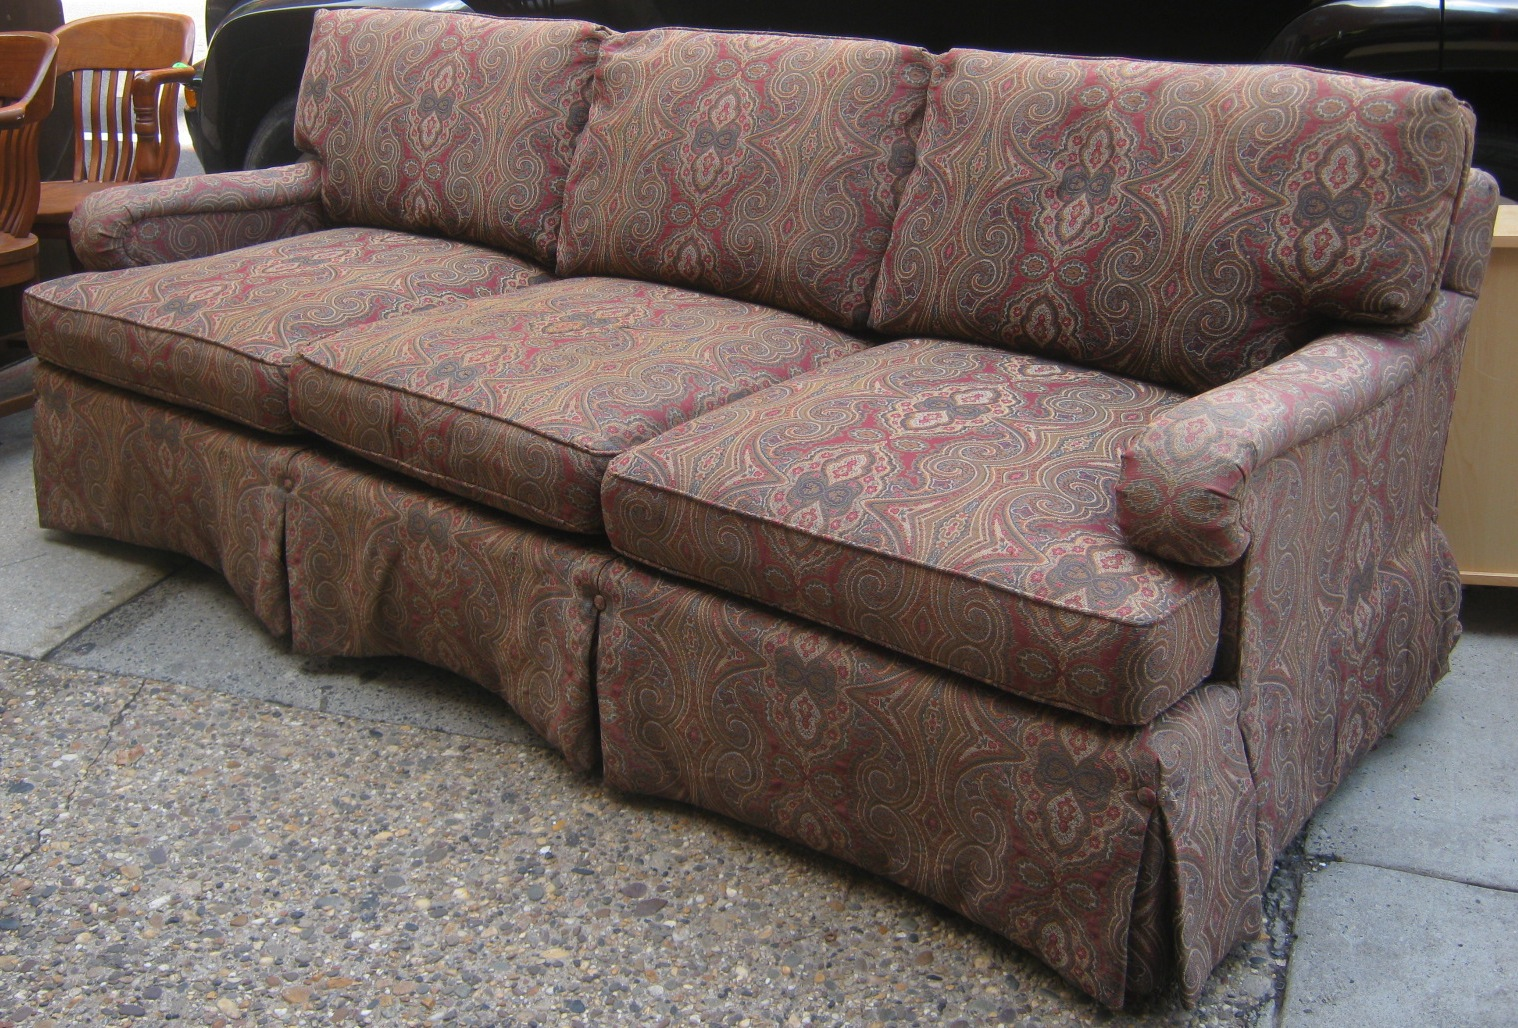 Henredon Sofa Fabrics Armless Loveseat Sleeper Paisley Simmons Emory Brownstone Thesofa